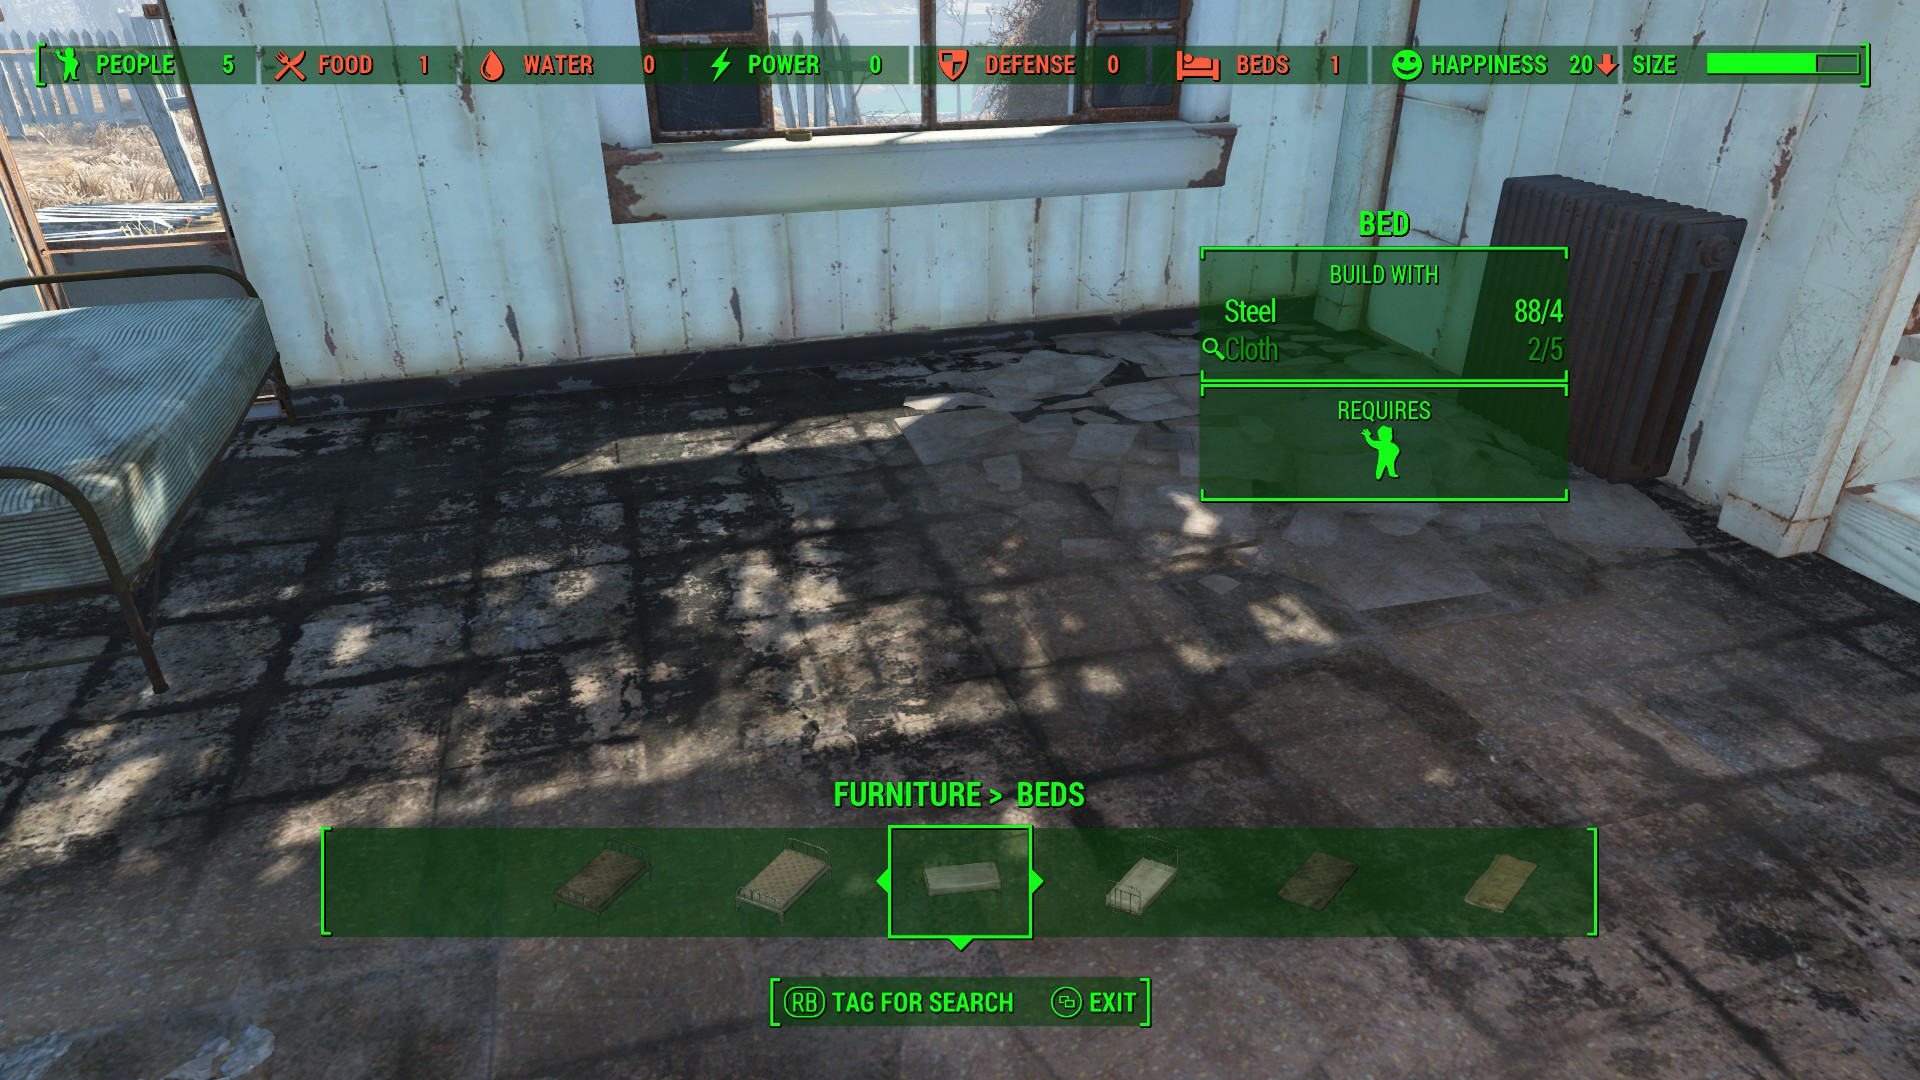 Fallout 4 tips and tricks: How to settle the Commonwealth